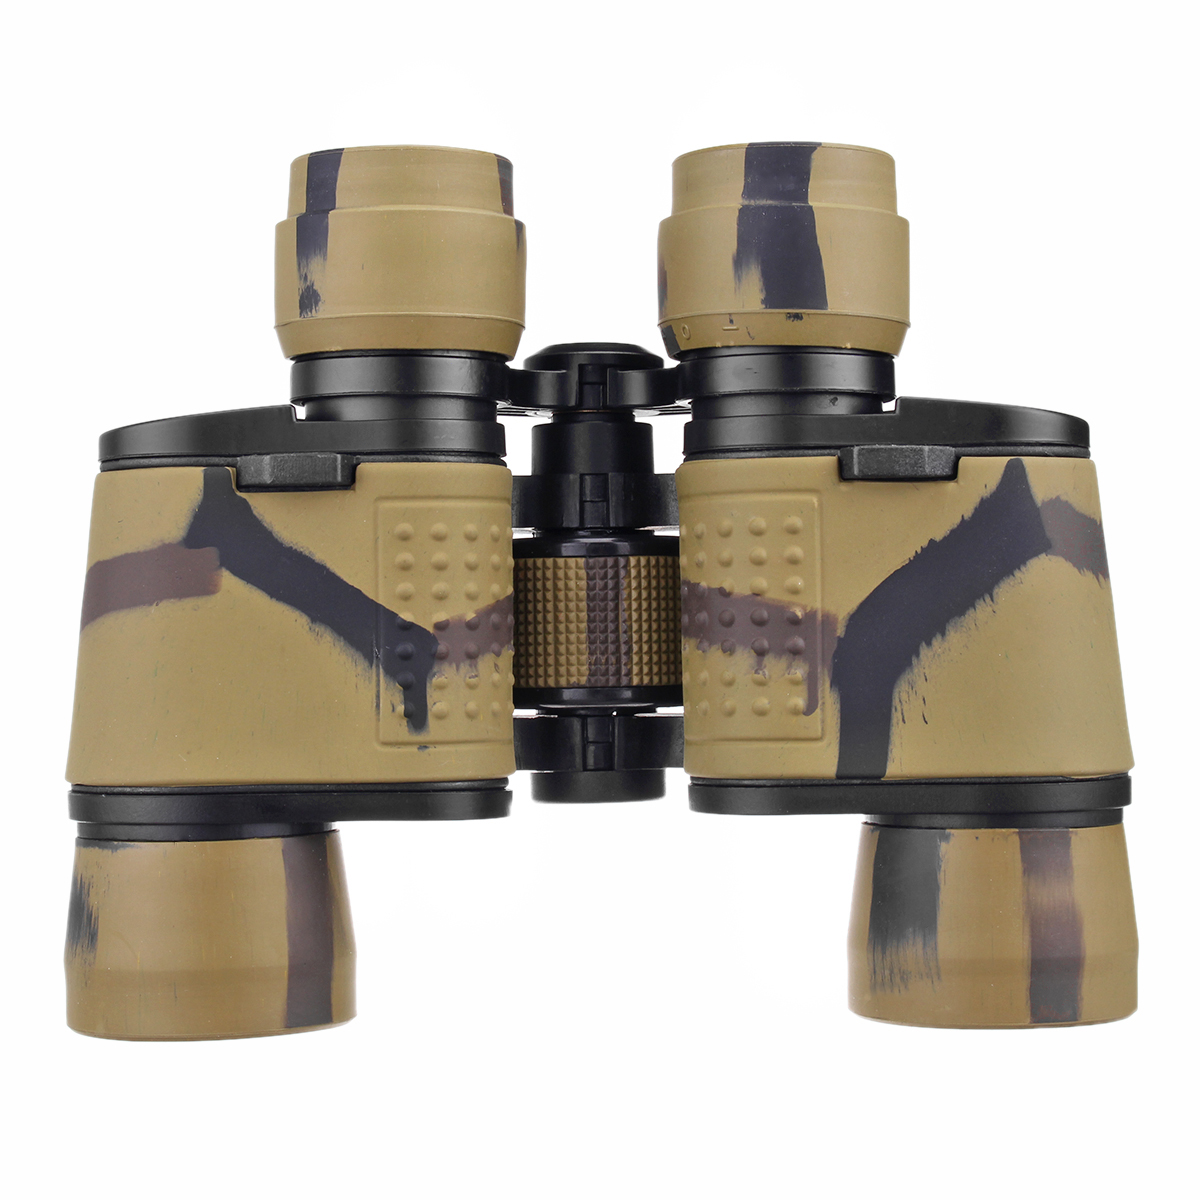 8X40 Outdoor Tactical Marine Binoculars HD Optic Night Vision Birdwatching Telescope